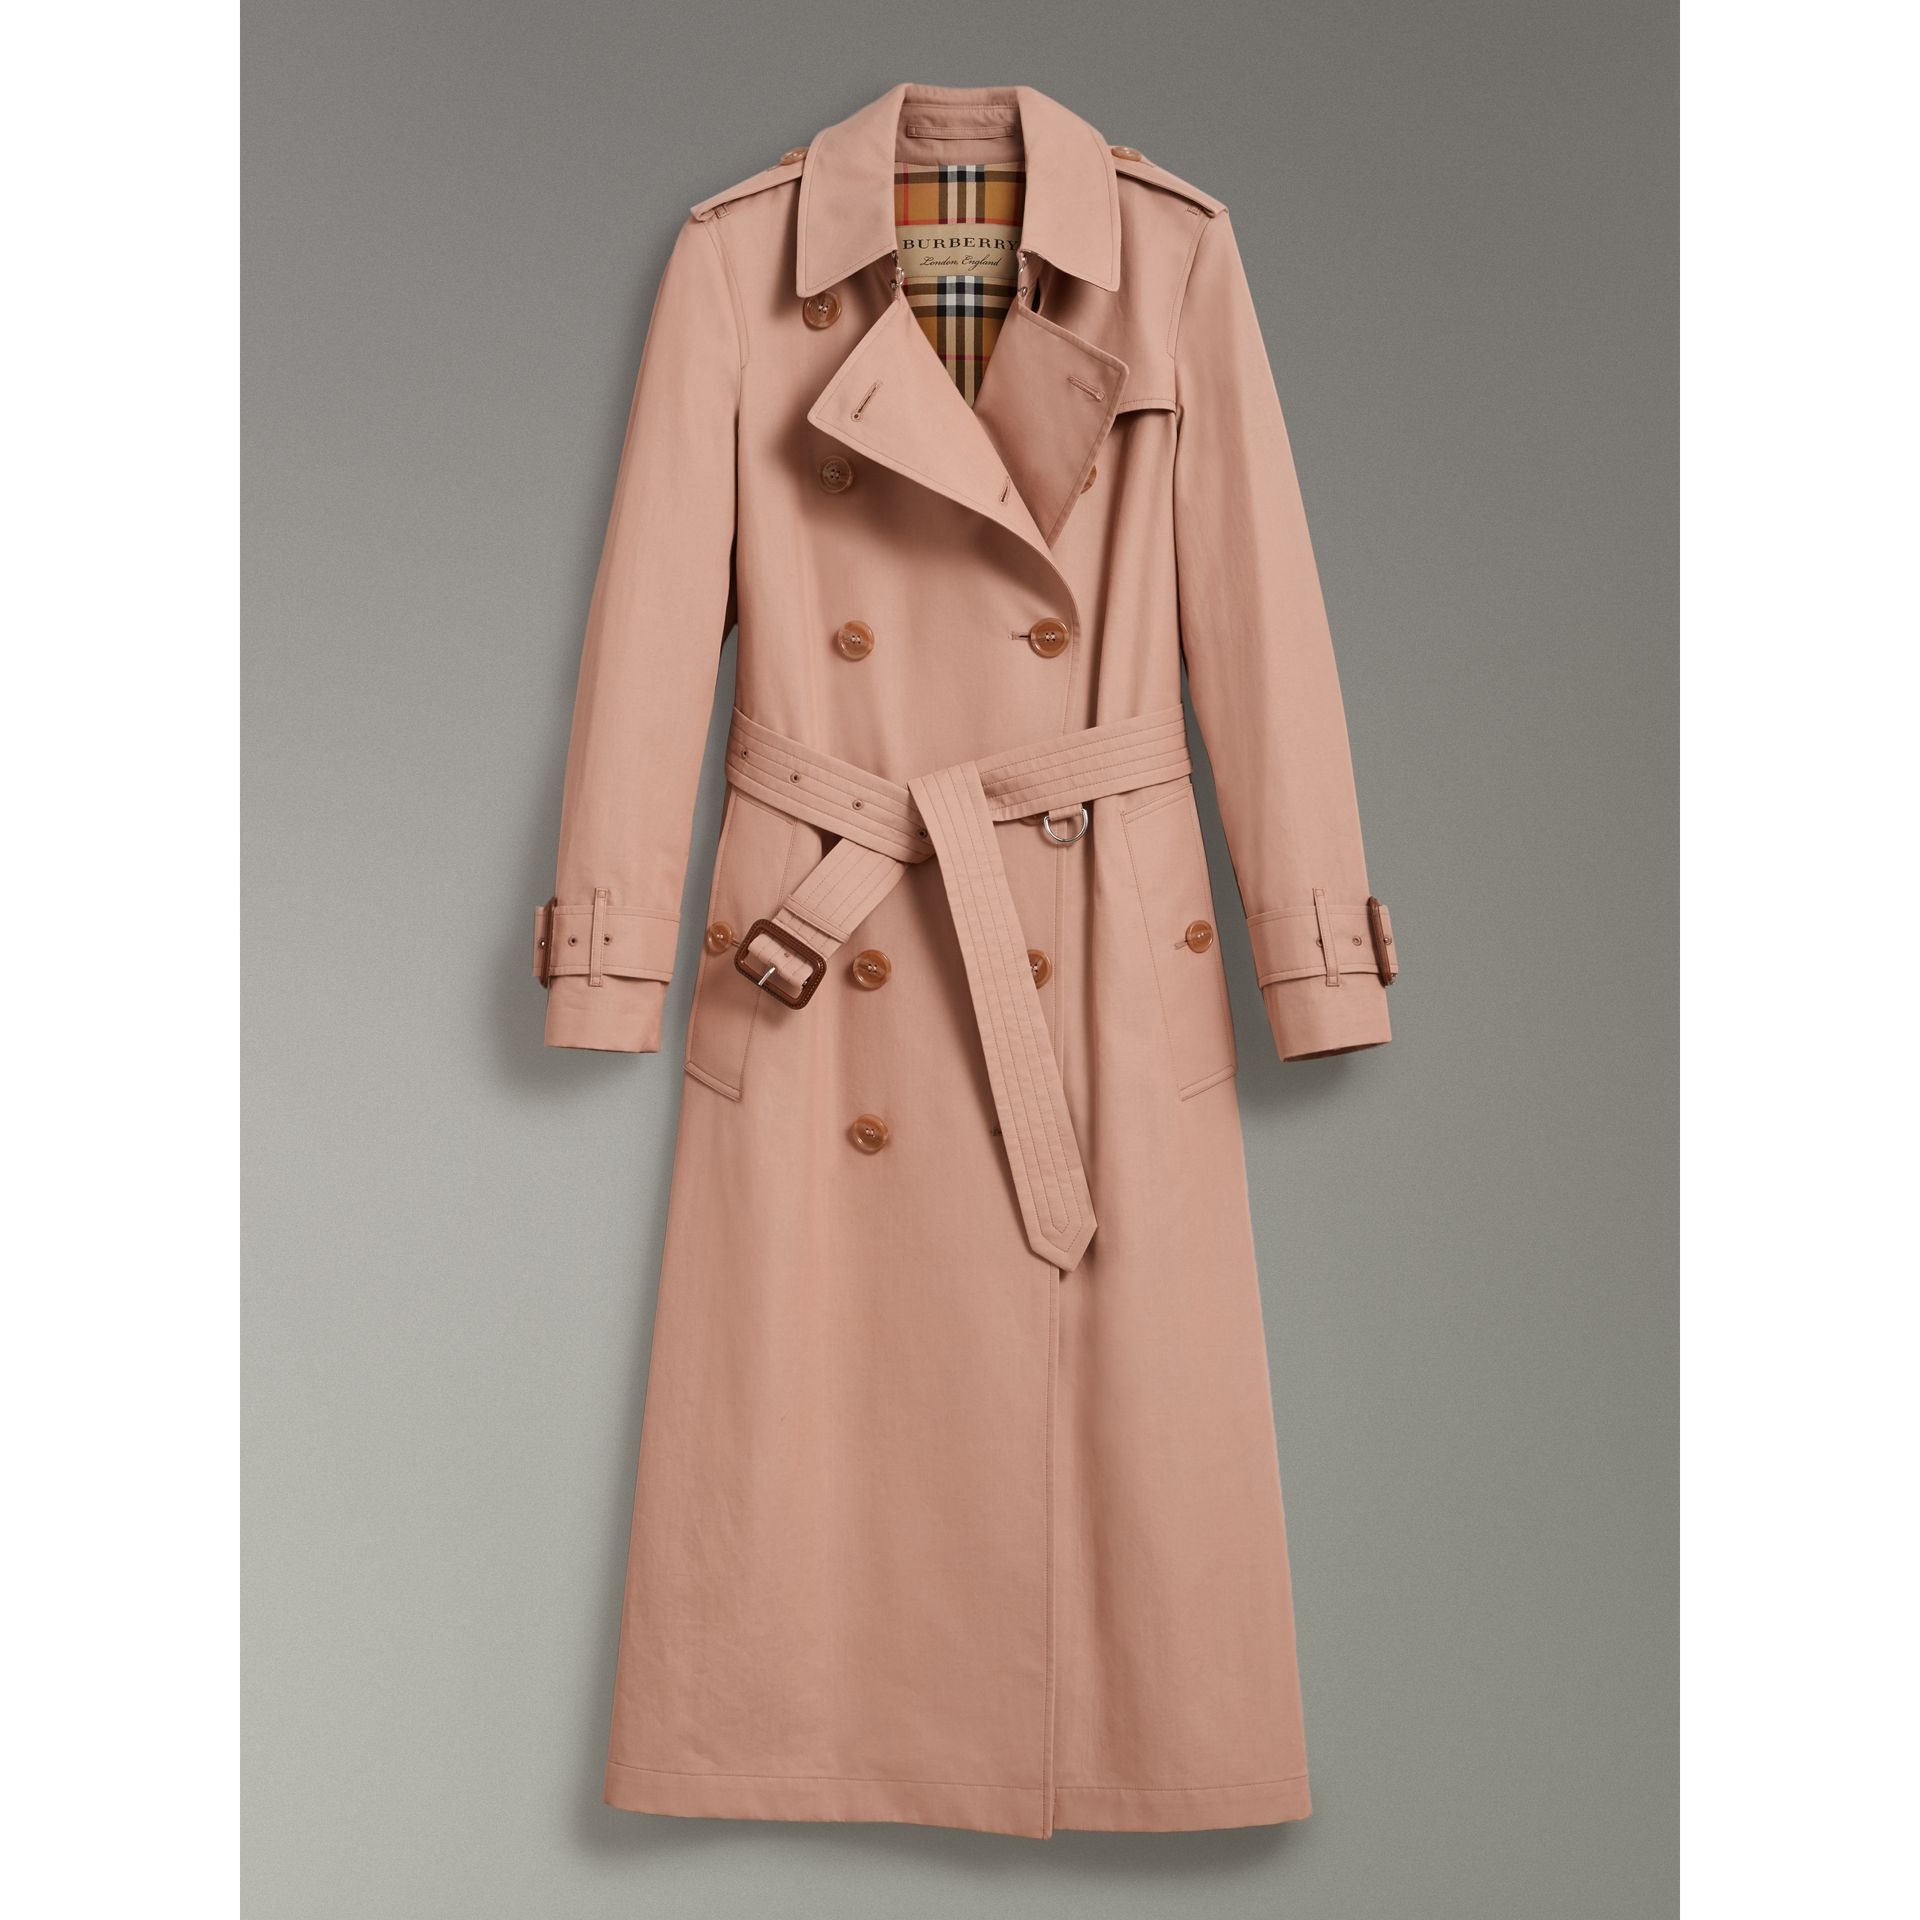 Tropical Gabardine Trench Coat in Pink Apricot - Women | Burberry Singapore - gallery image 3